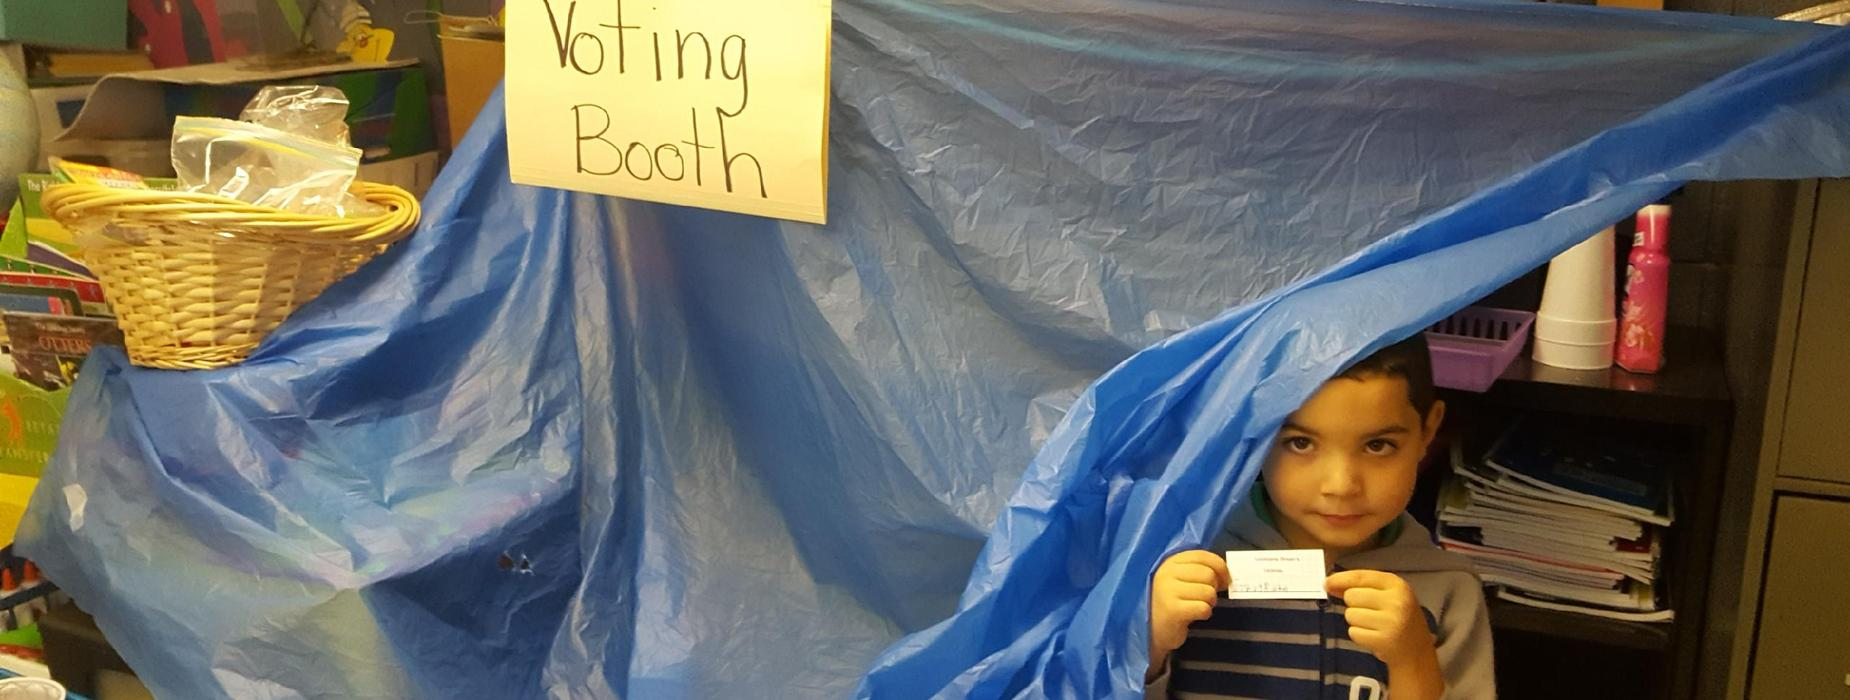 1st grade voting booth